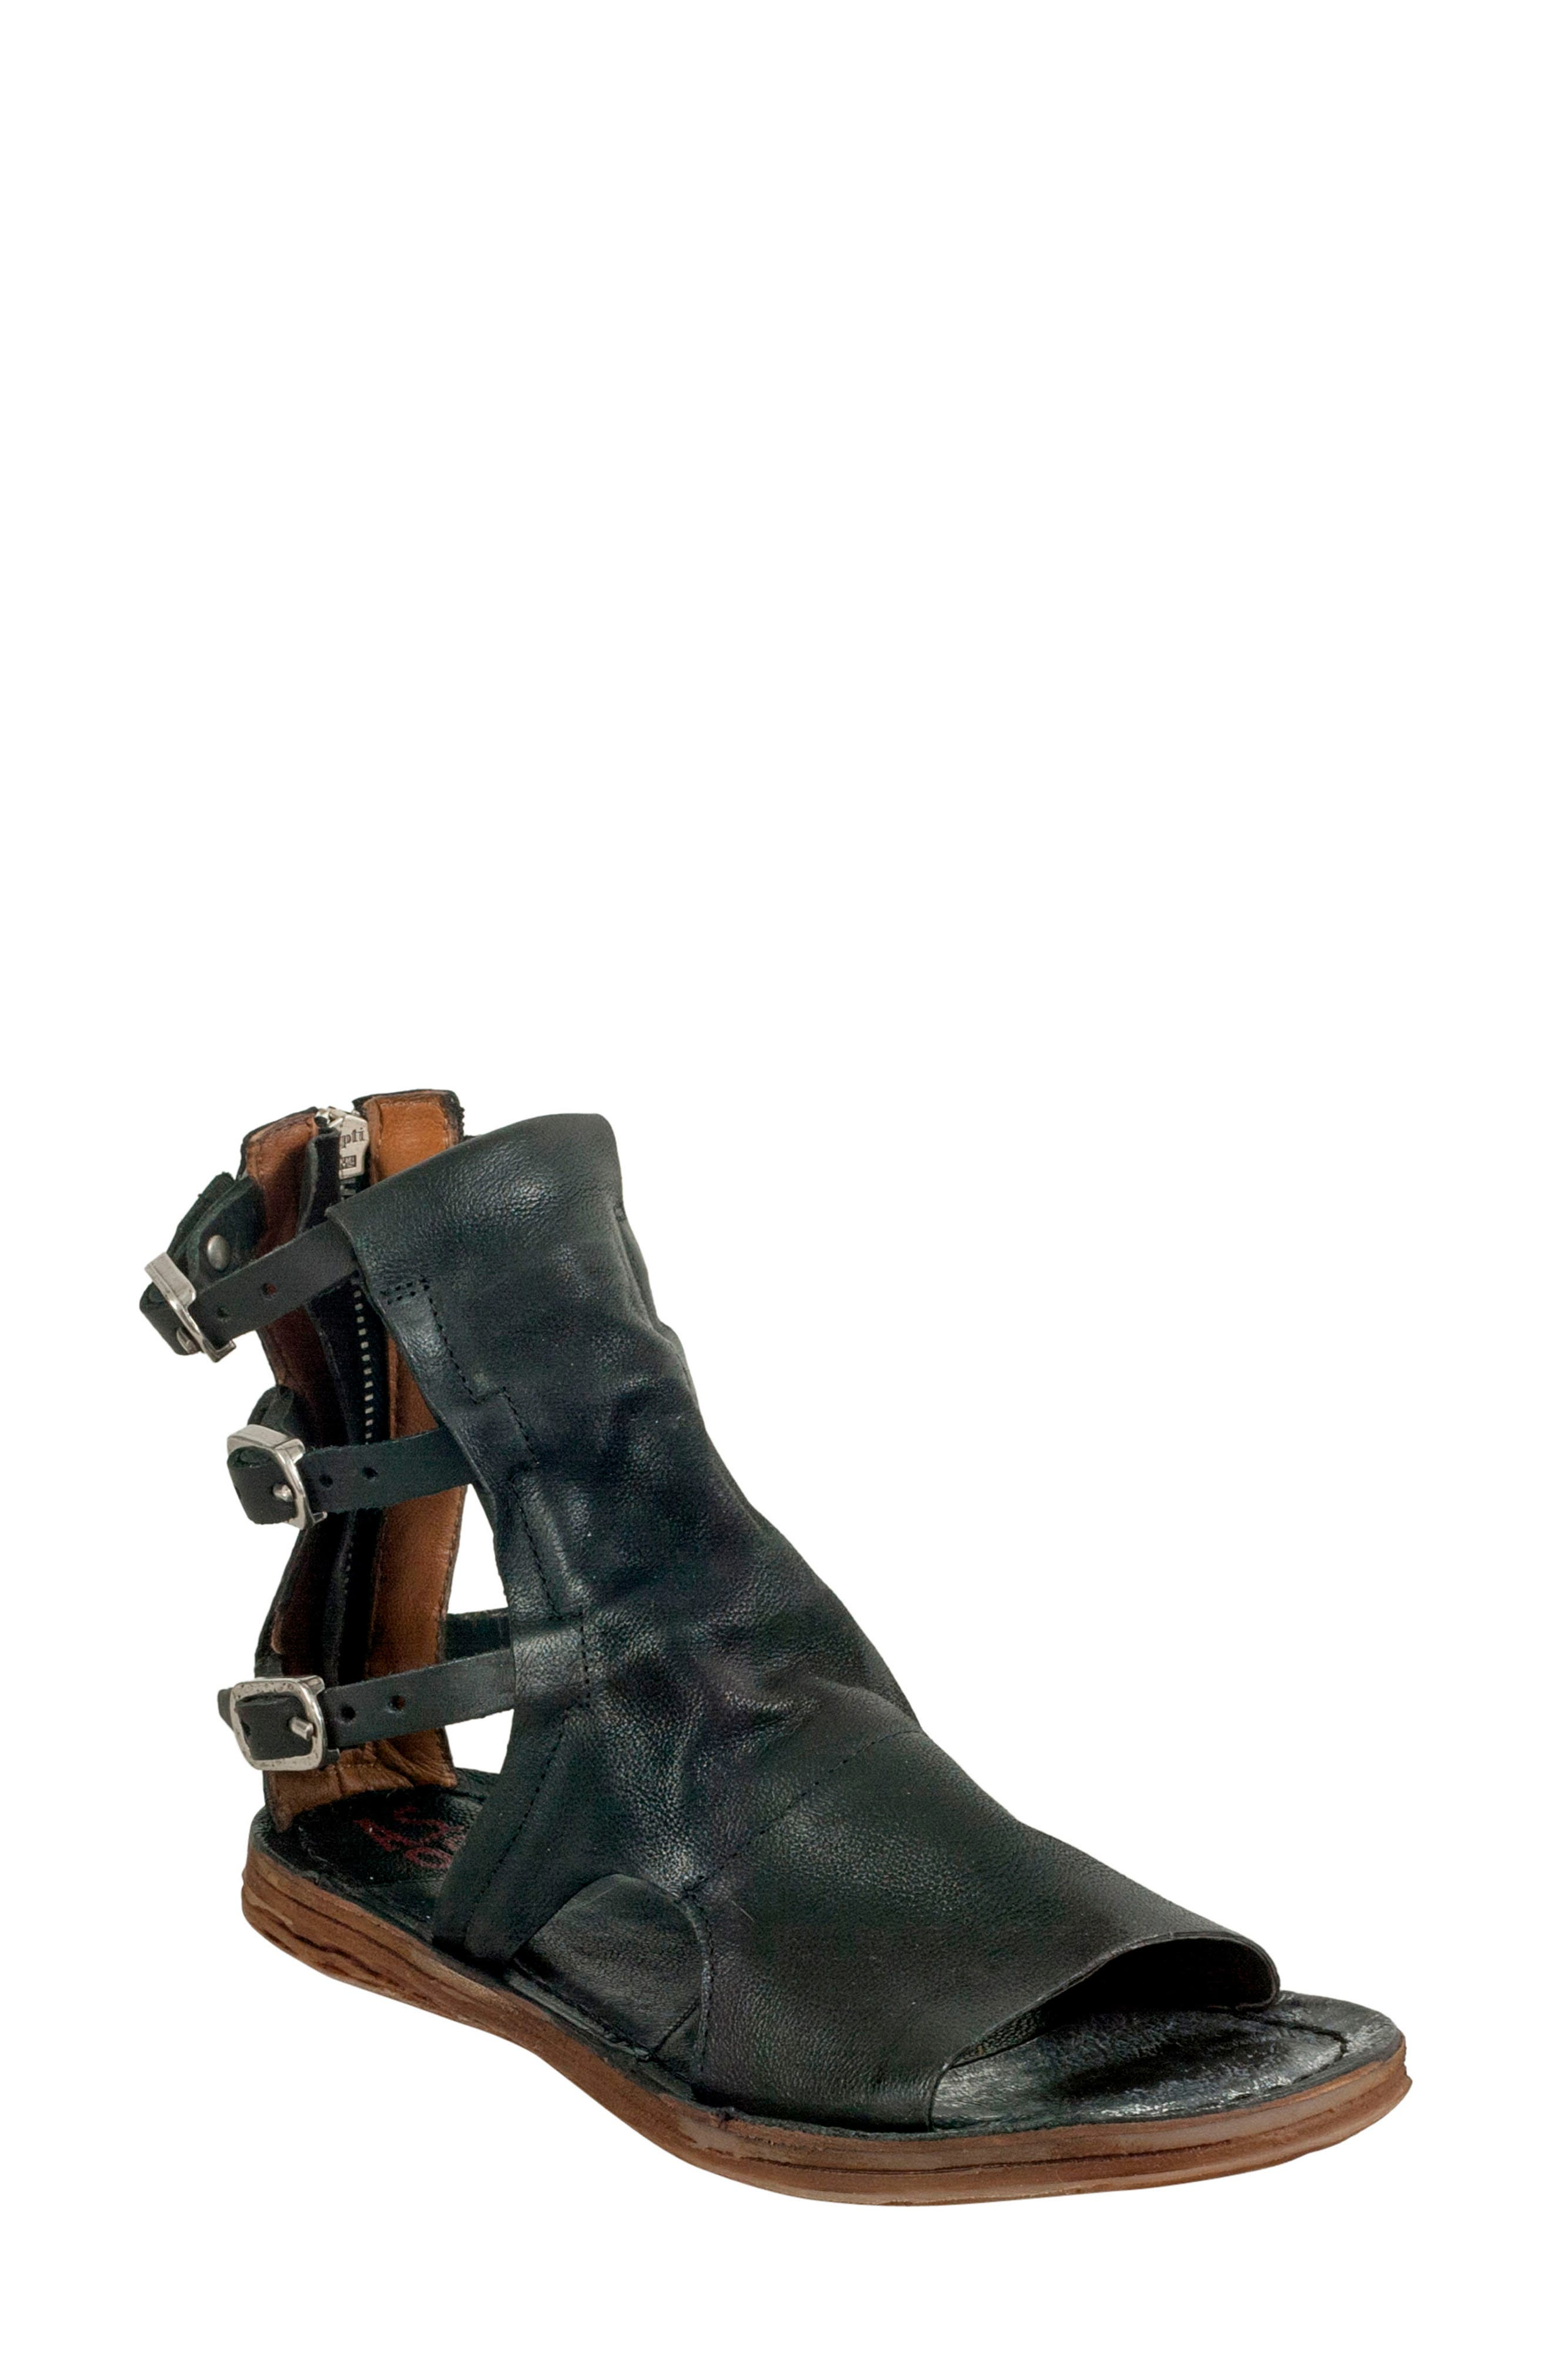 Ryde Sandal,                             Main thumbnail 1, color,                             BLACK LEATHER